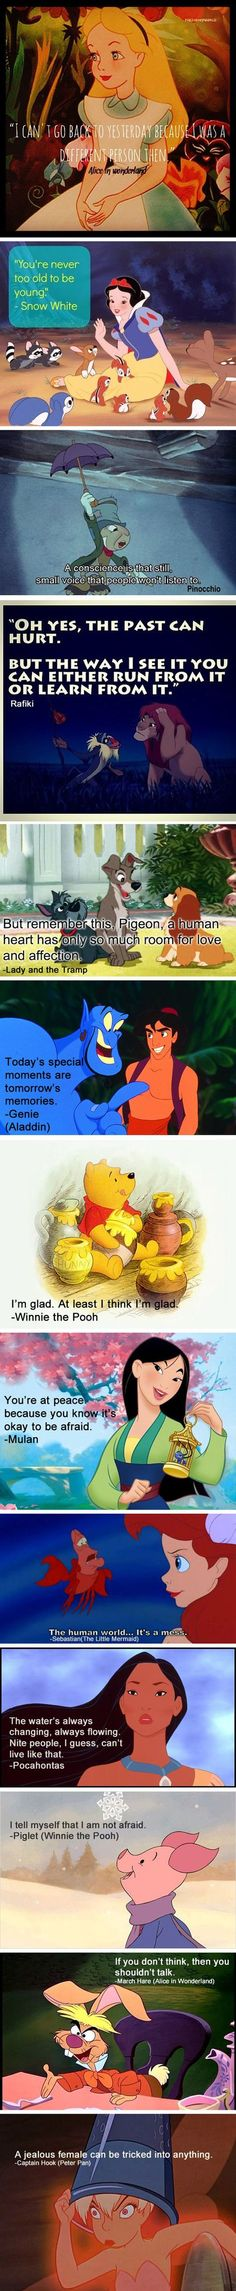 Disney quotes- didnt know that mulan one...